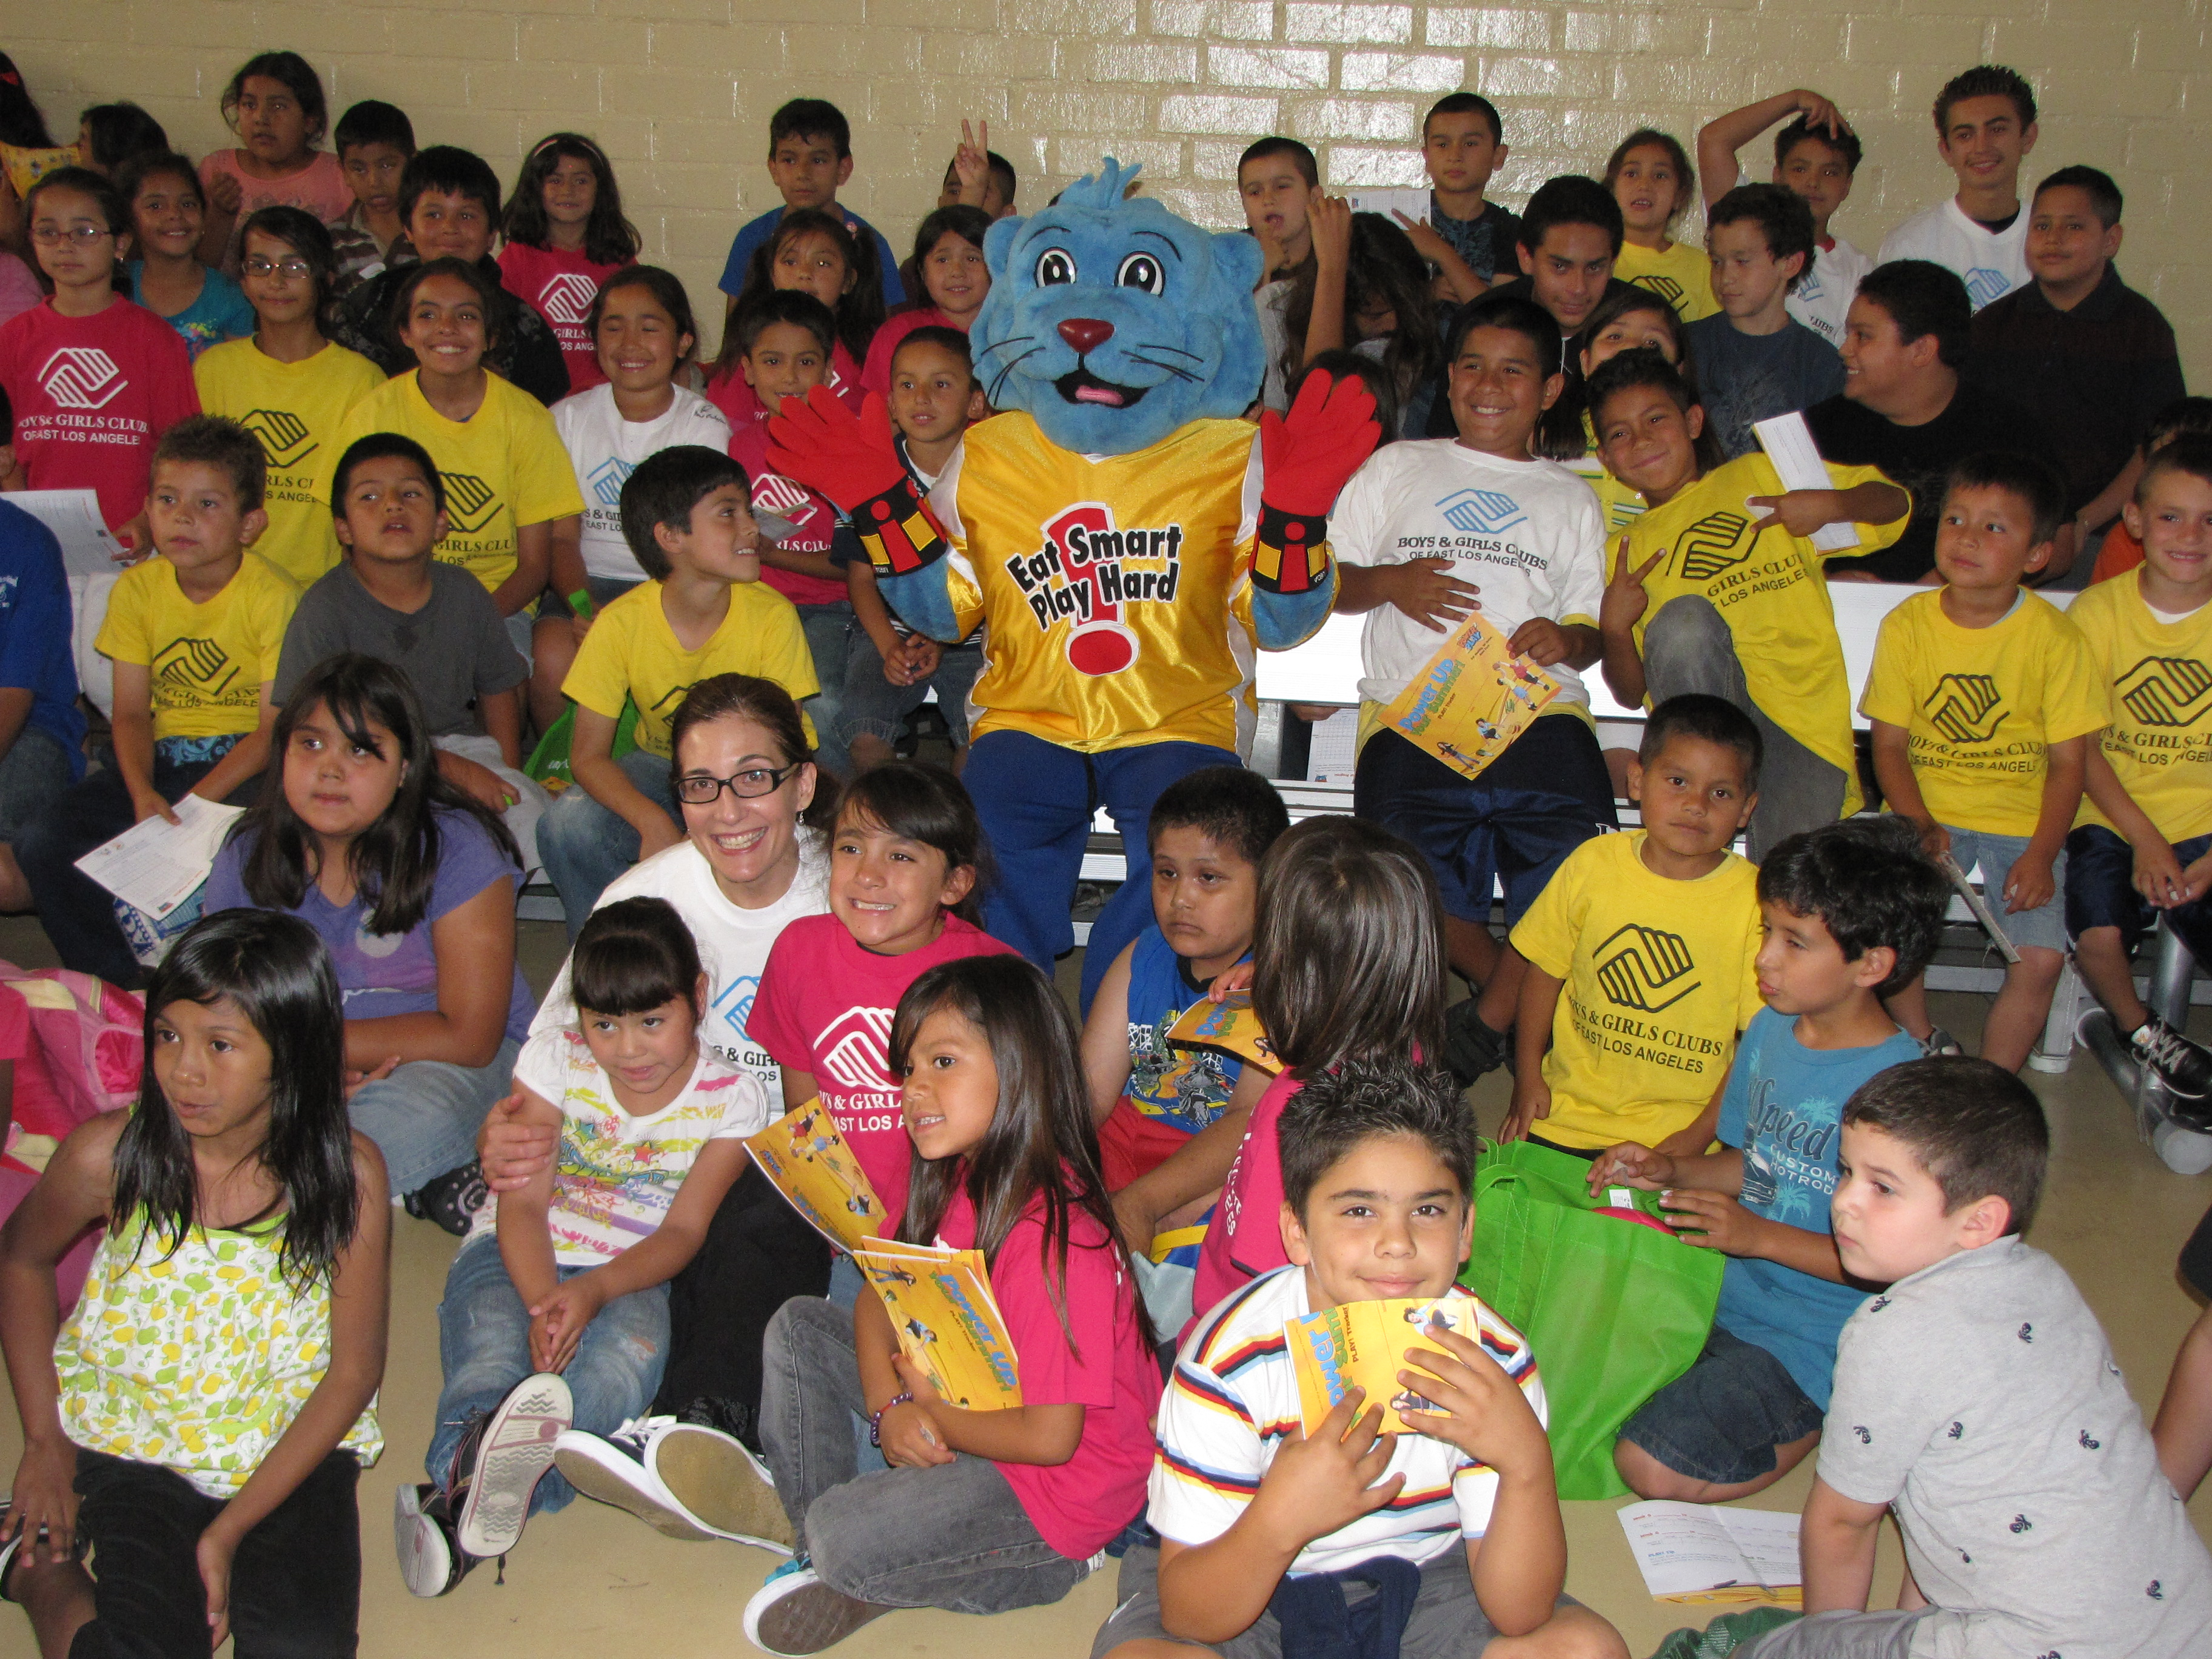 Lisa Pino Visits the Boys and Girls Club of East L.A.